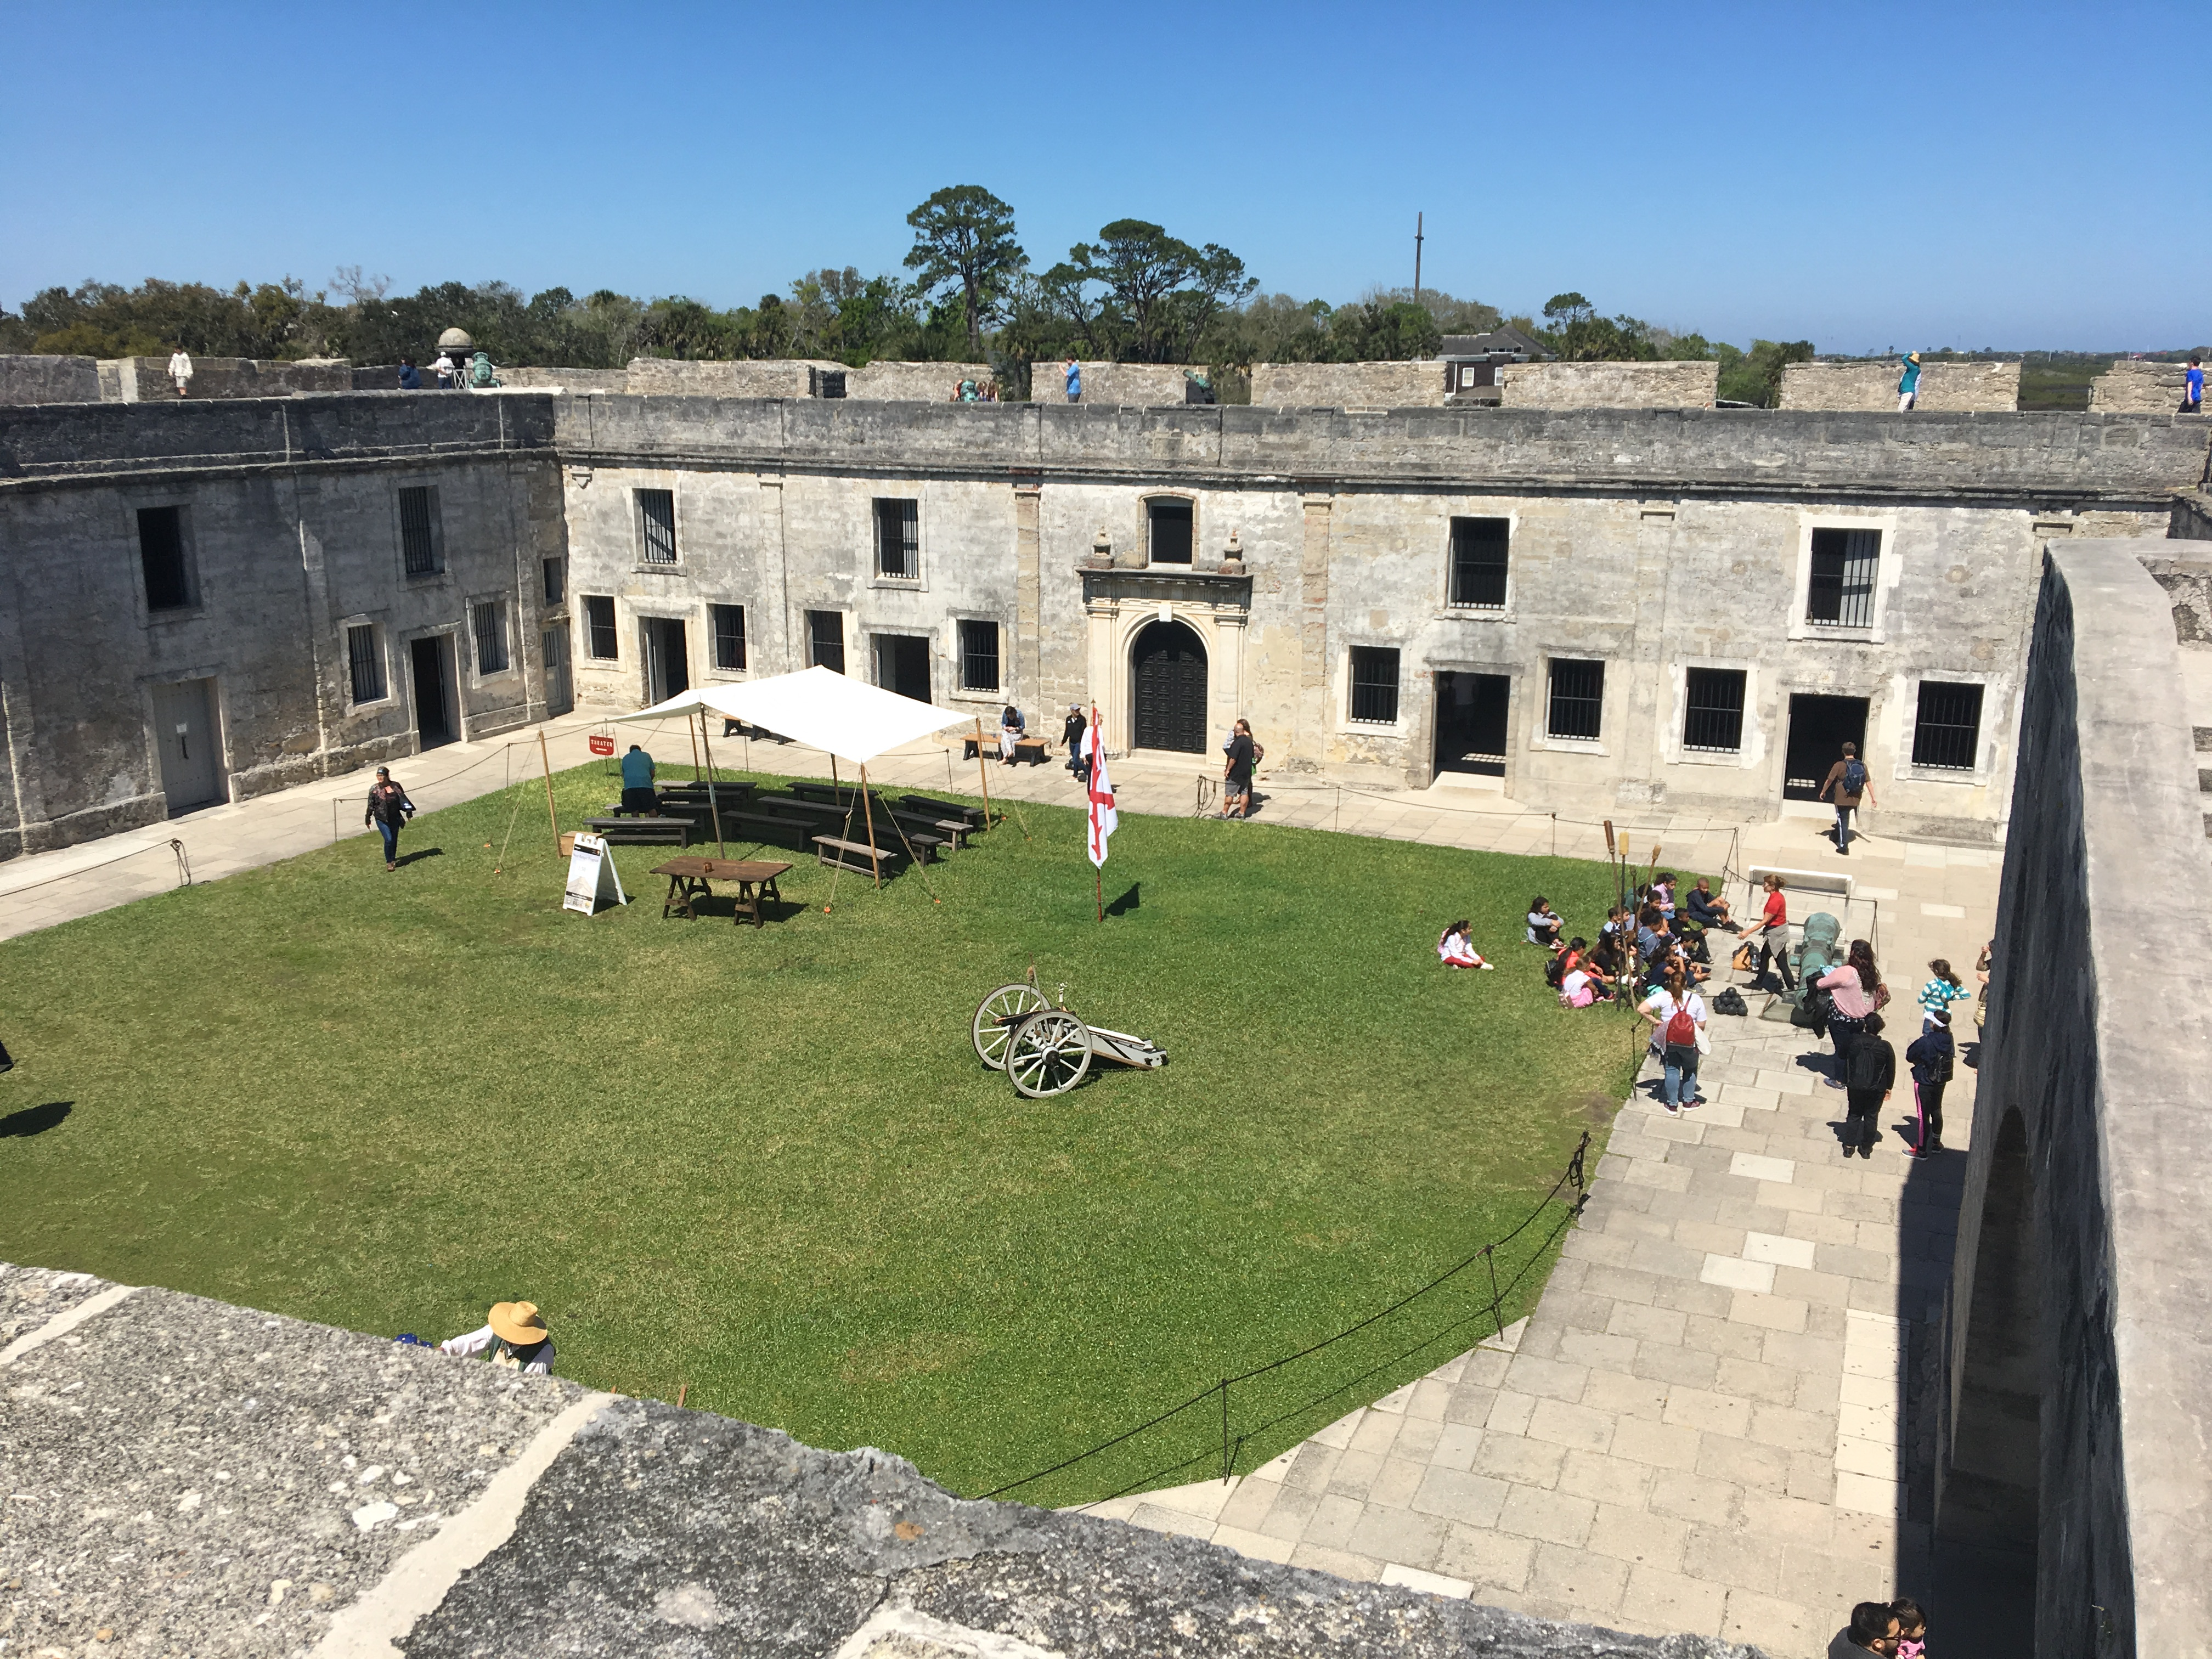 Image of inner courtyard of the Castillo de San Marcos National Monument, showing a green grass area, a cannon demonstration, and a tent where public interpretation occurs.